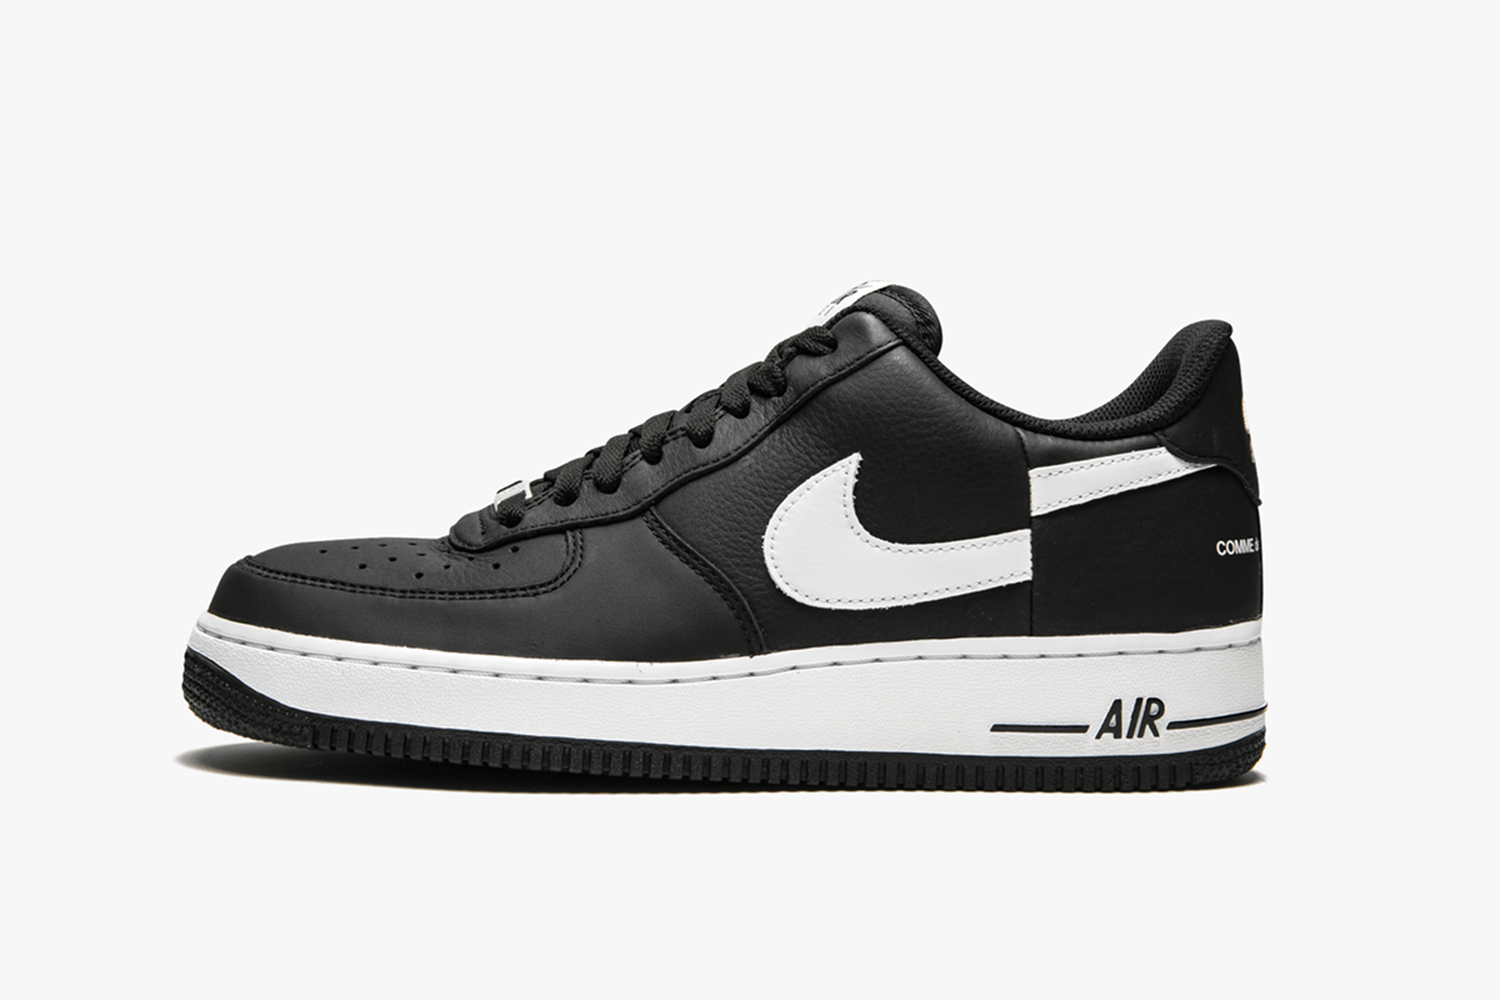 Air Force 1 Low Shoes